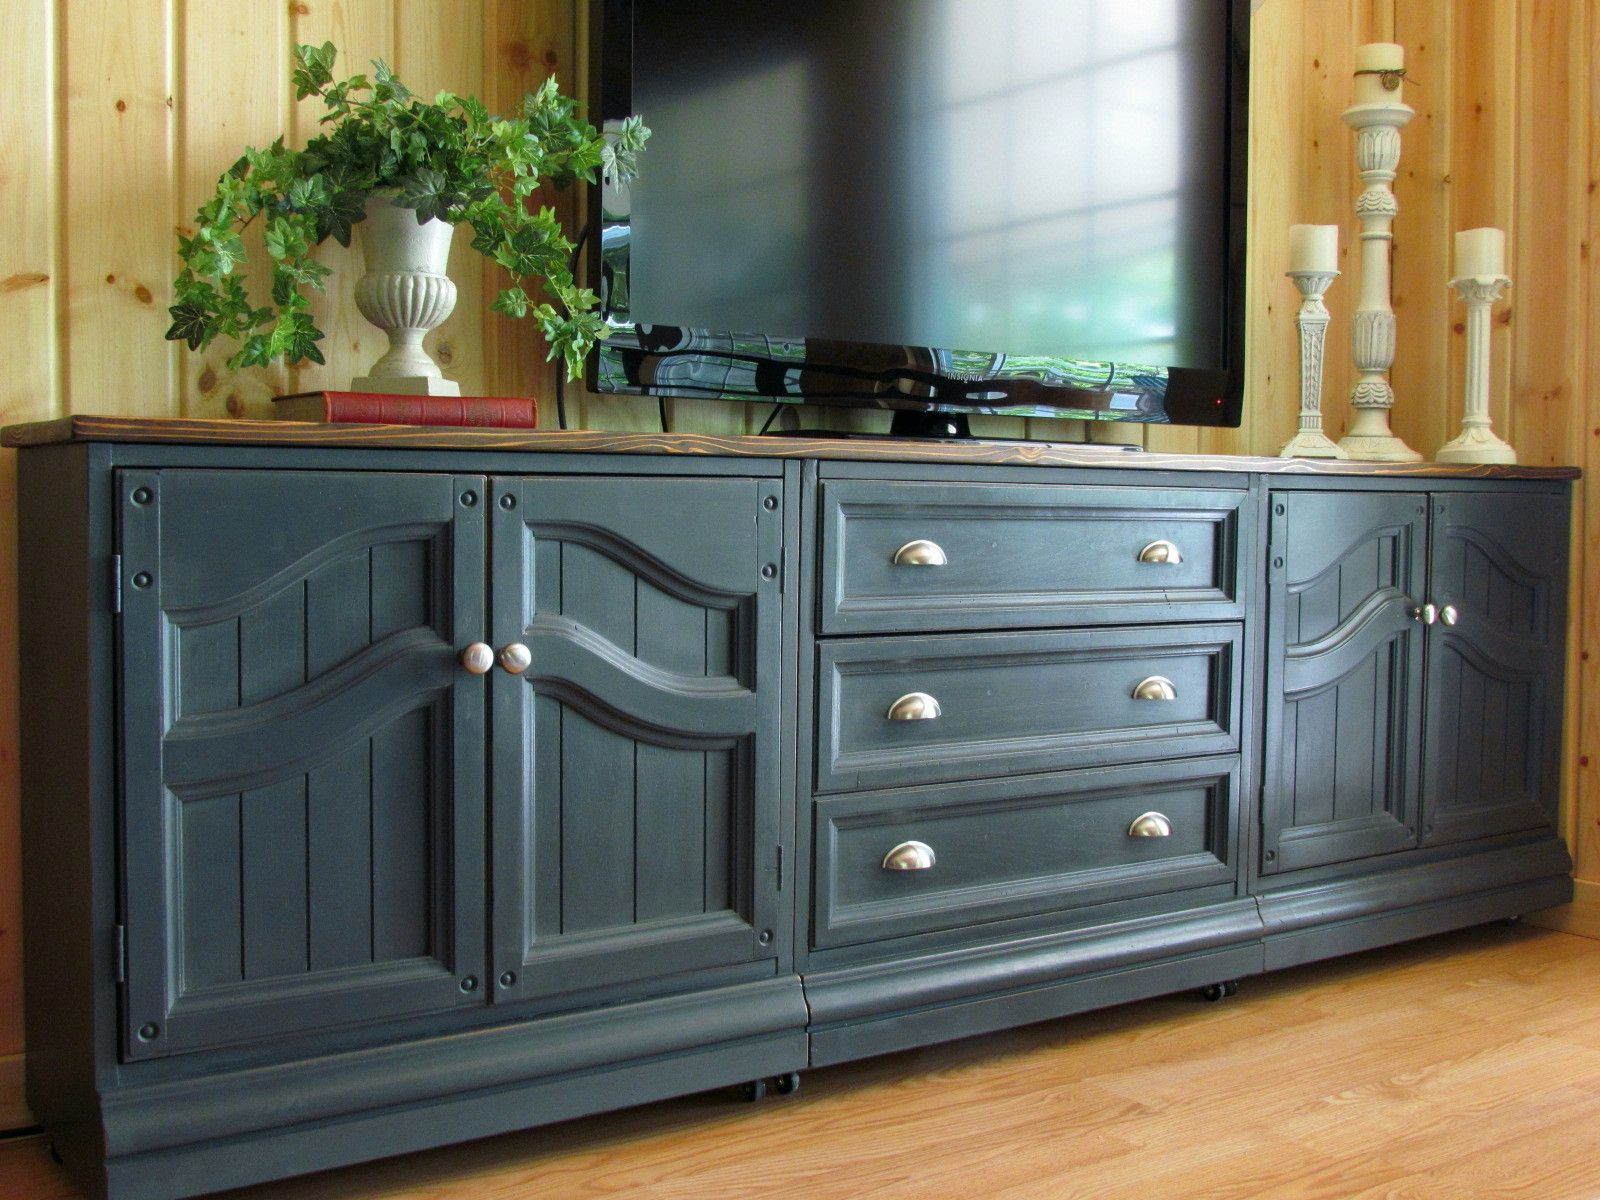 Image Of Tv Console Using Base Kitchen cabinets | TV Cabinet In Graphite